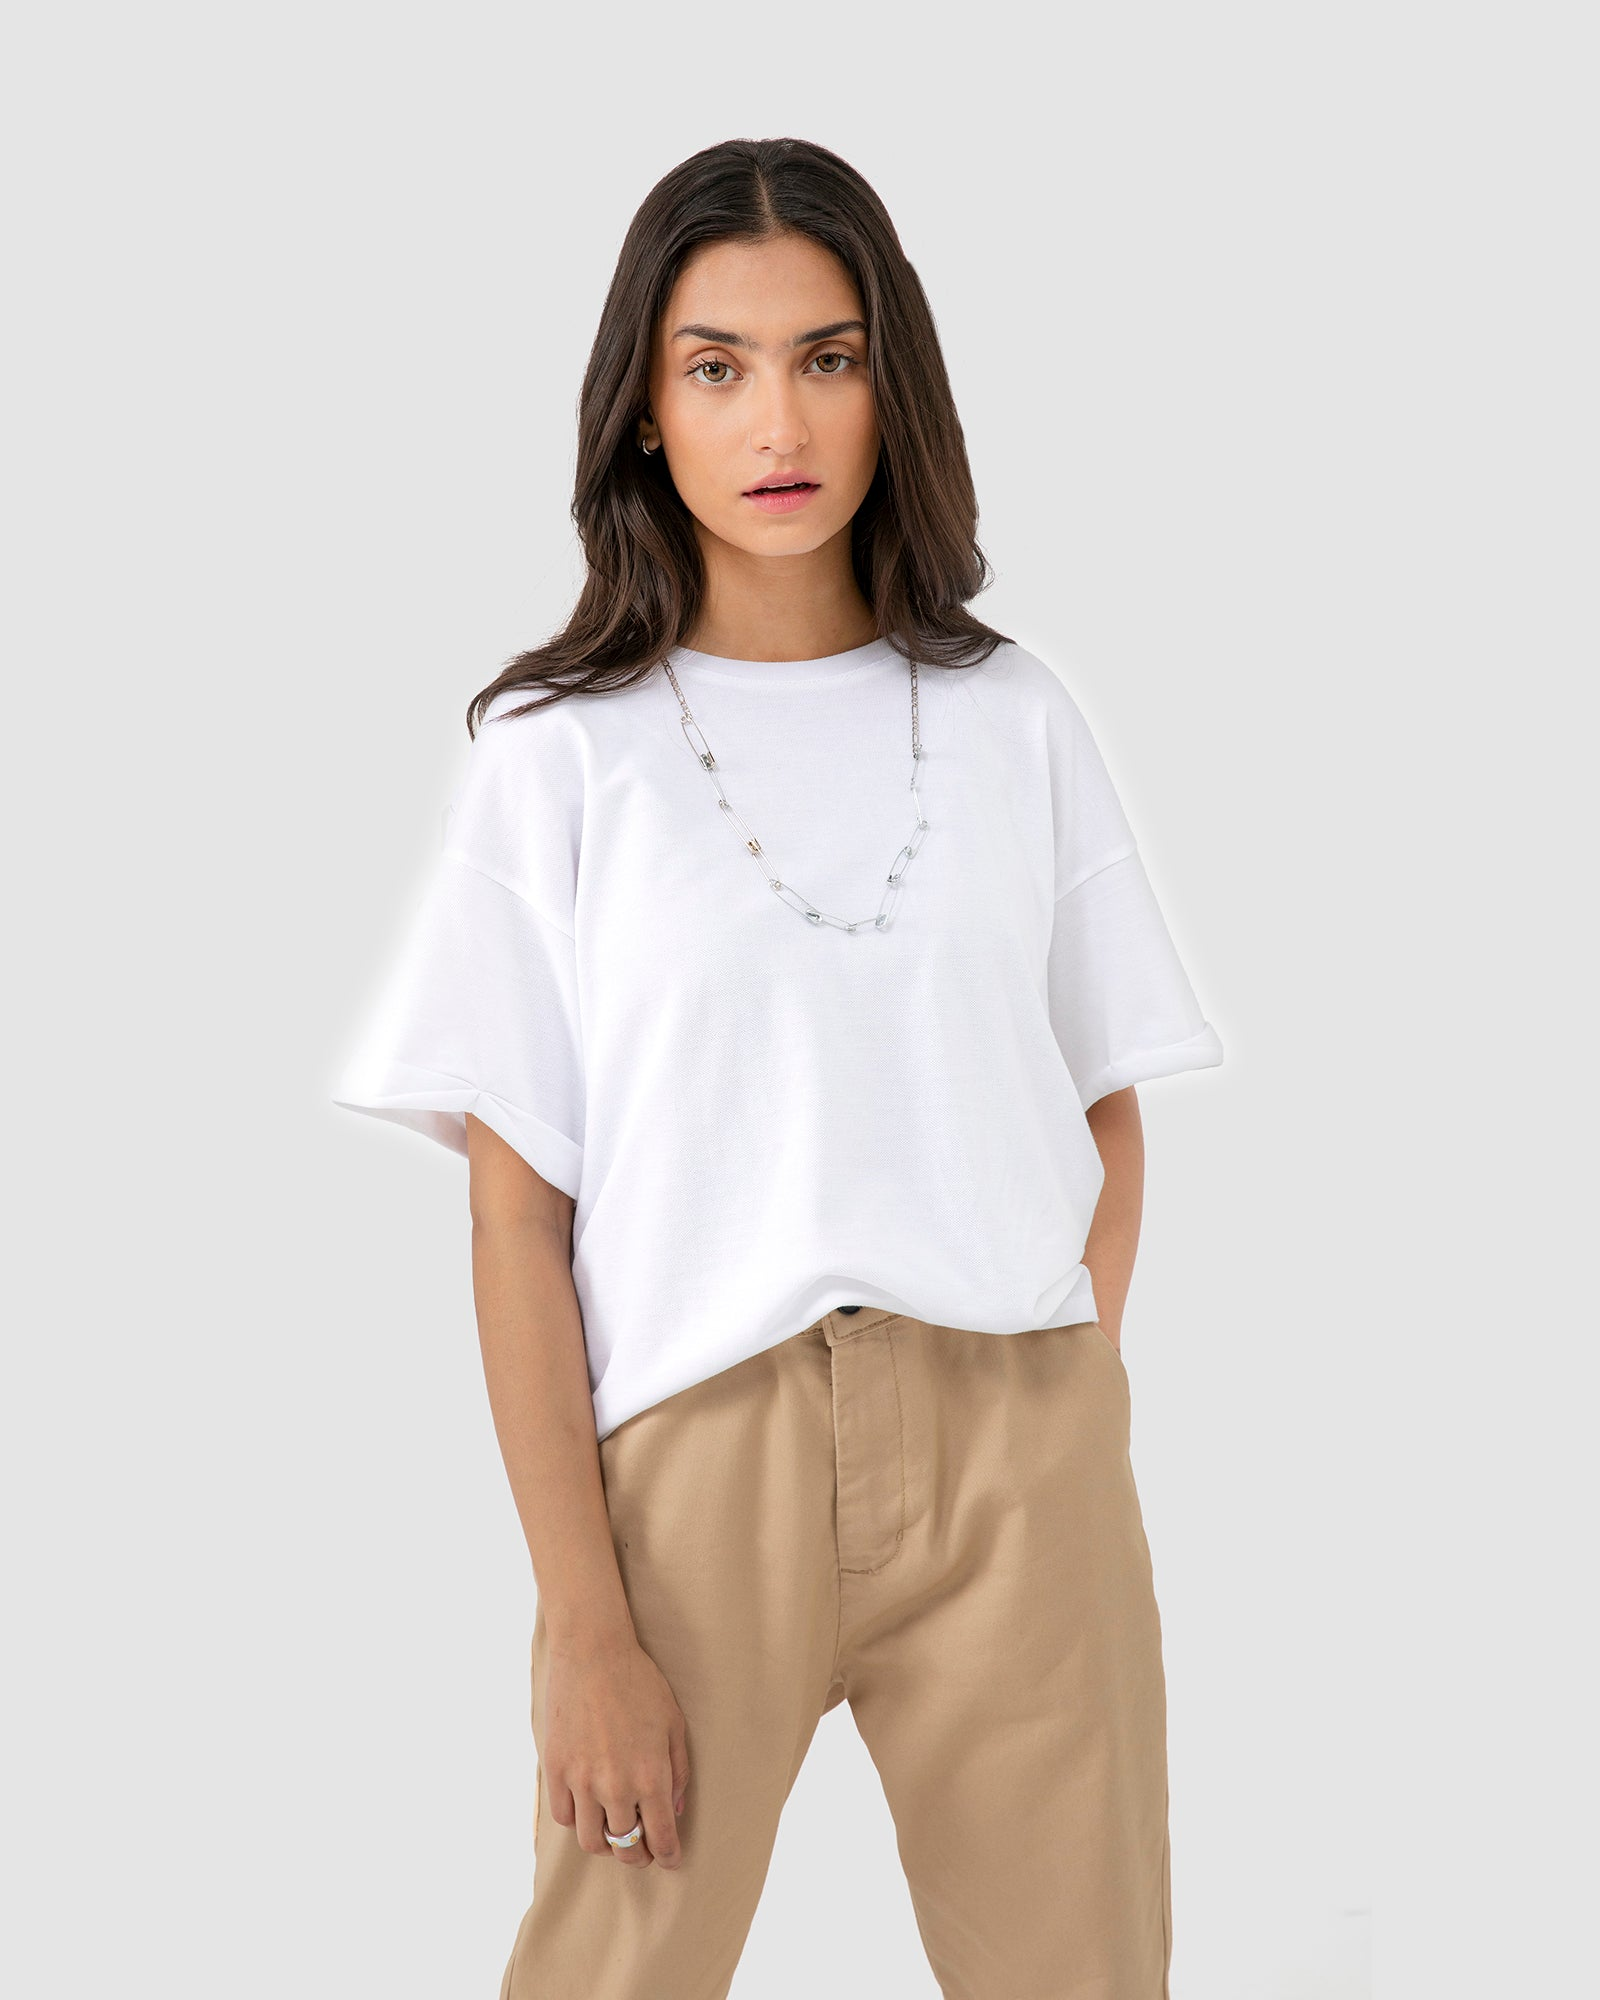 Relax Fit Boxy Tee